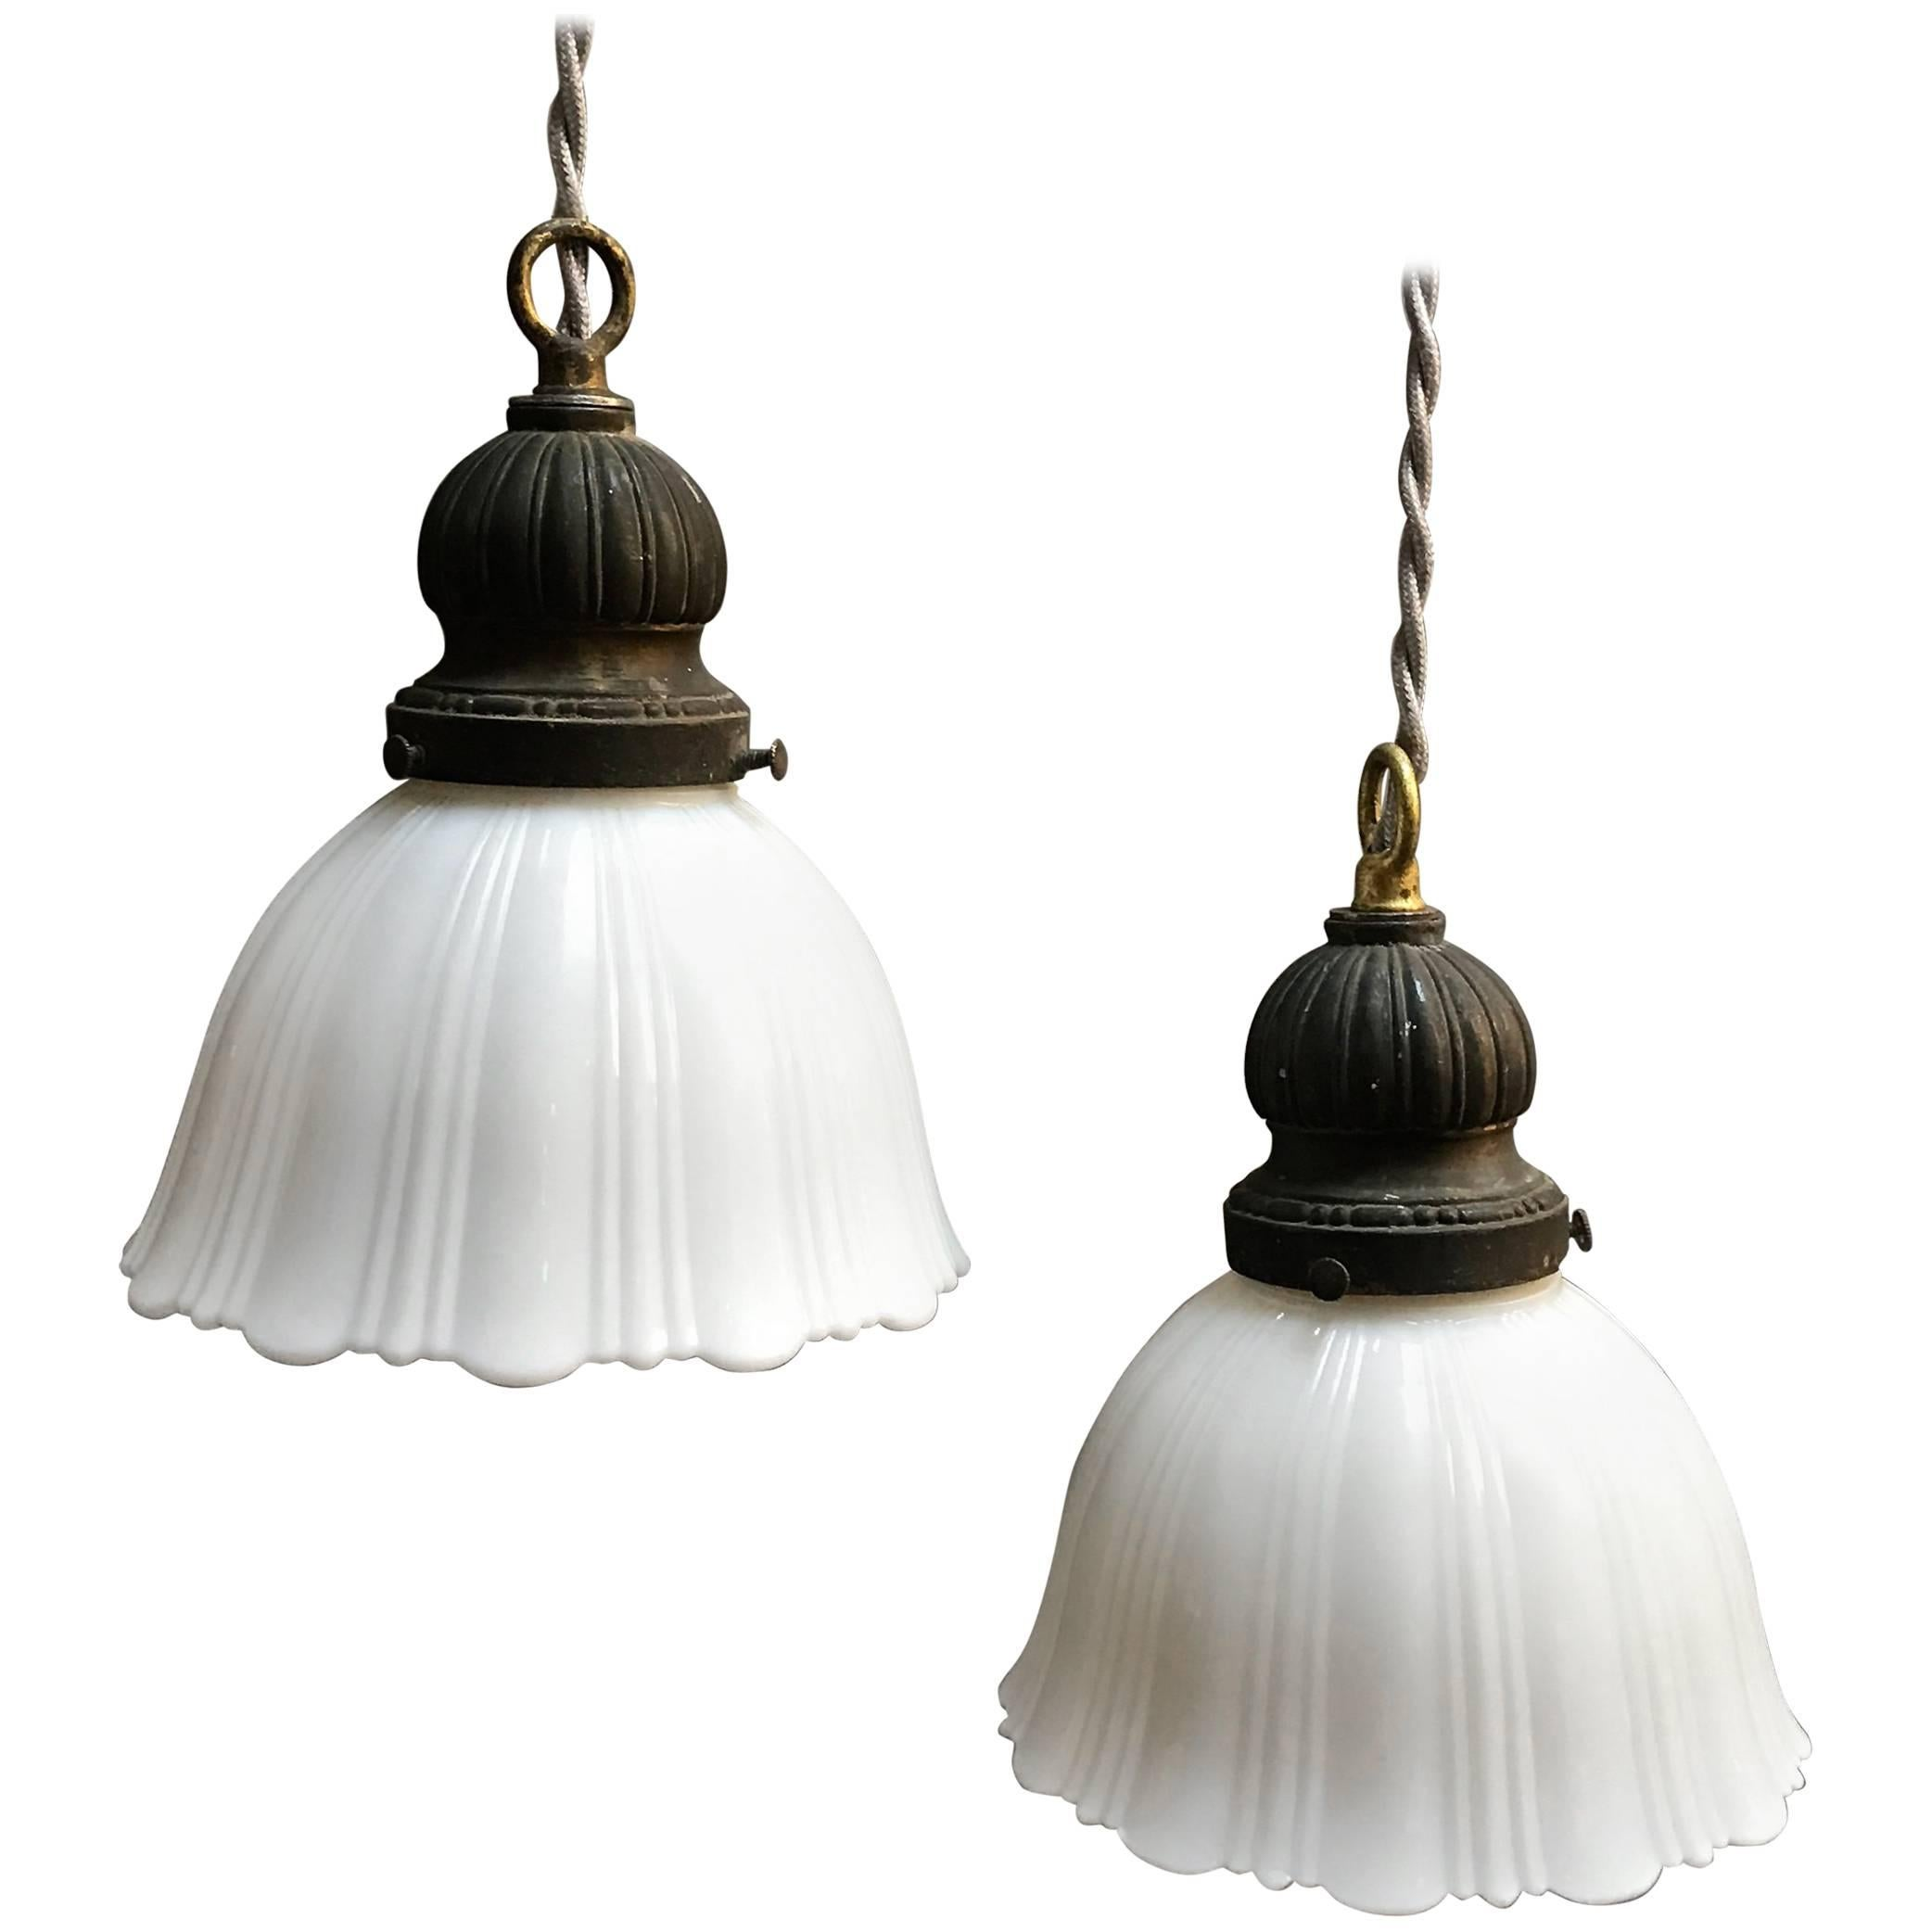 Pair of Fluted Milk Glass Bell Pendant Lights 1  sc 1 st  1stDibs & Pair of Fluted Milk Glass Bell Pendant Lights For Sale at 1stdibs azcodes.com